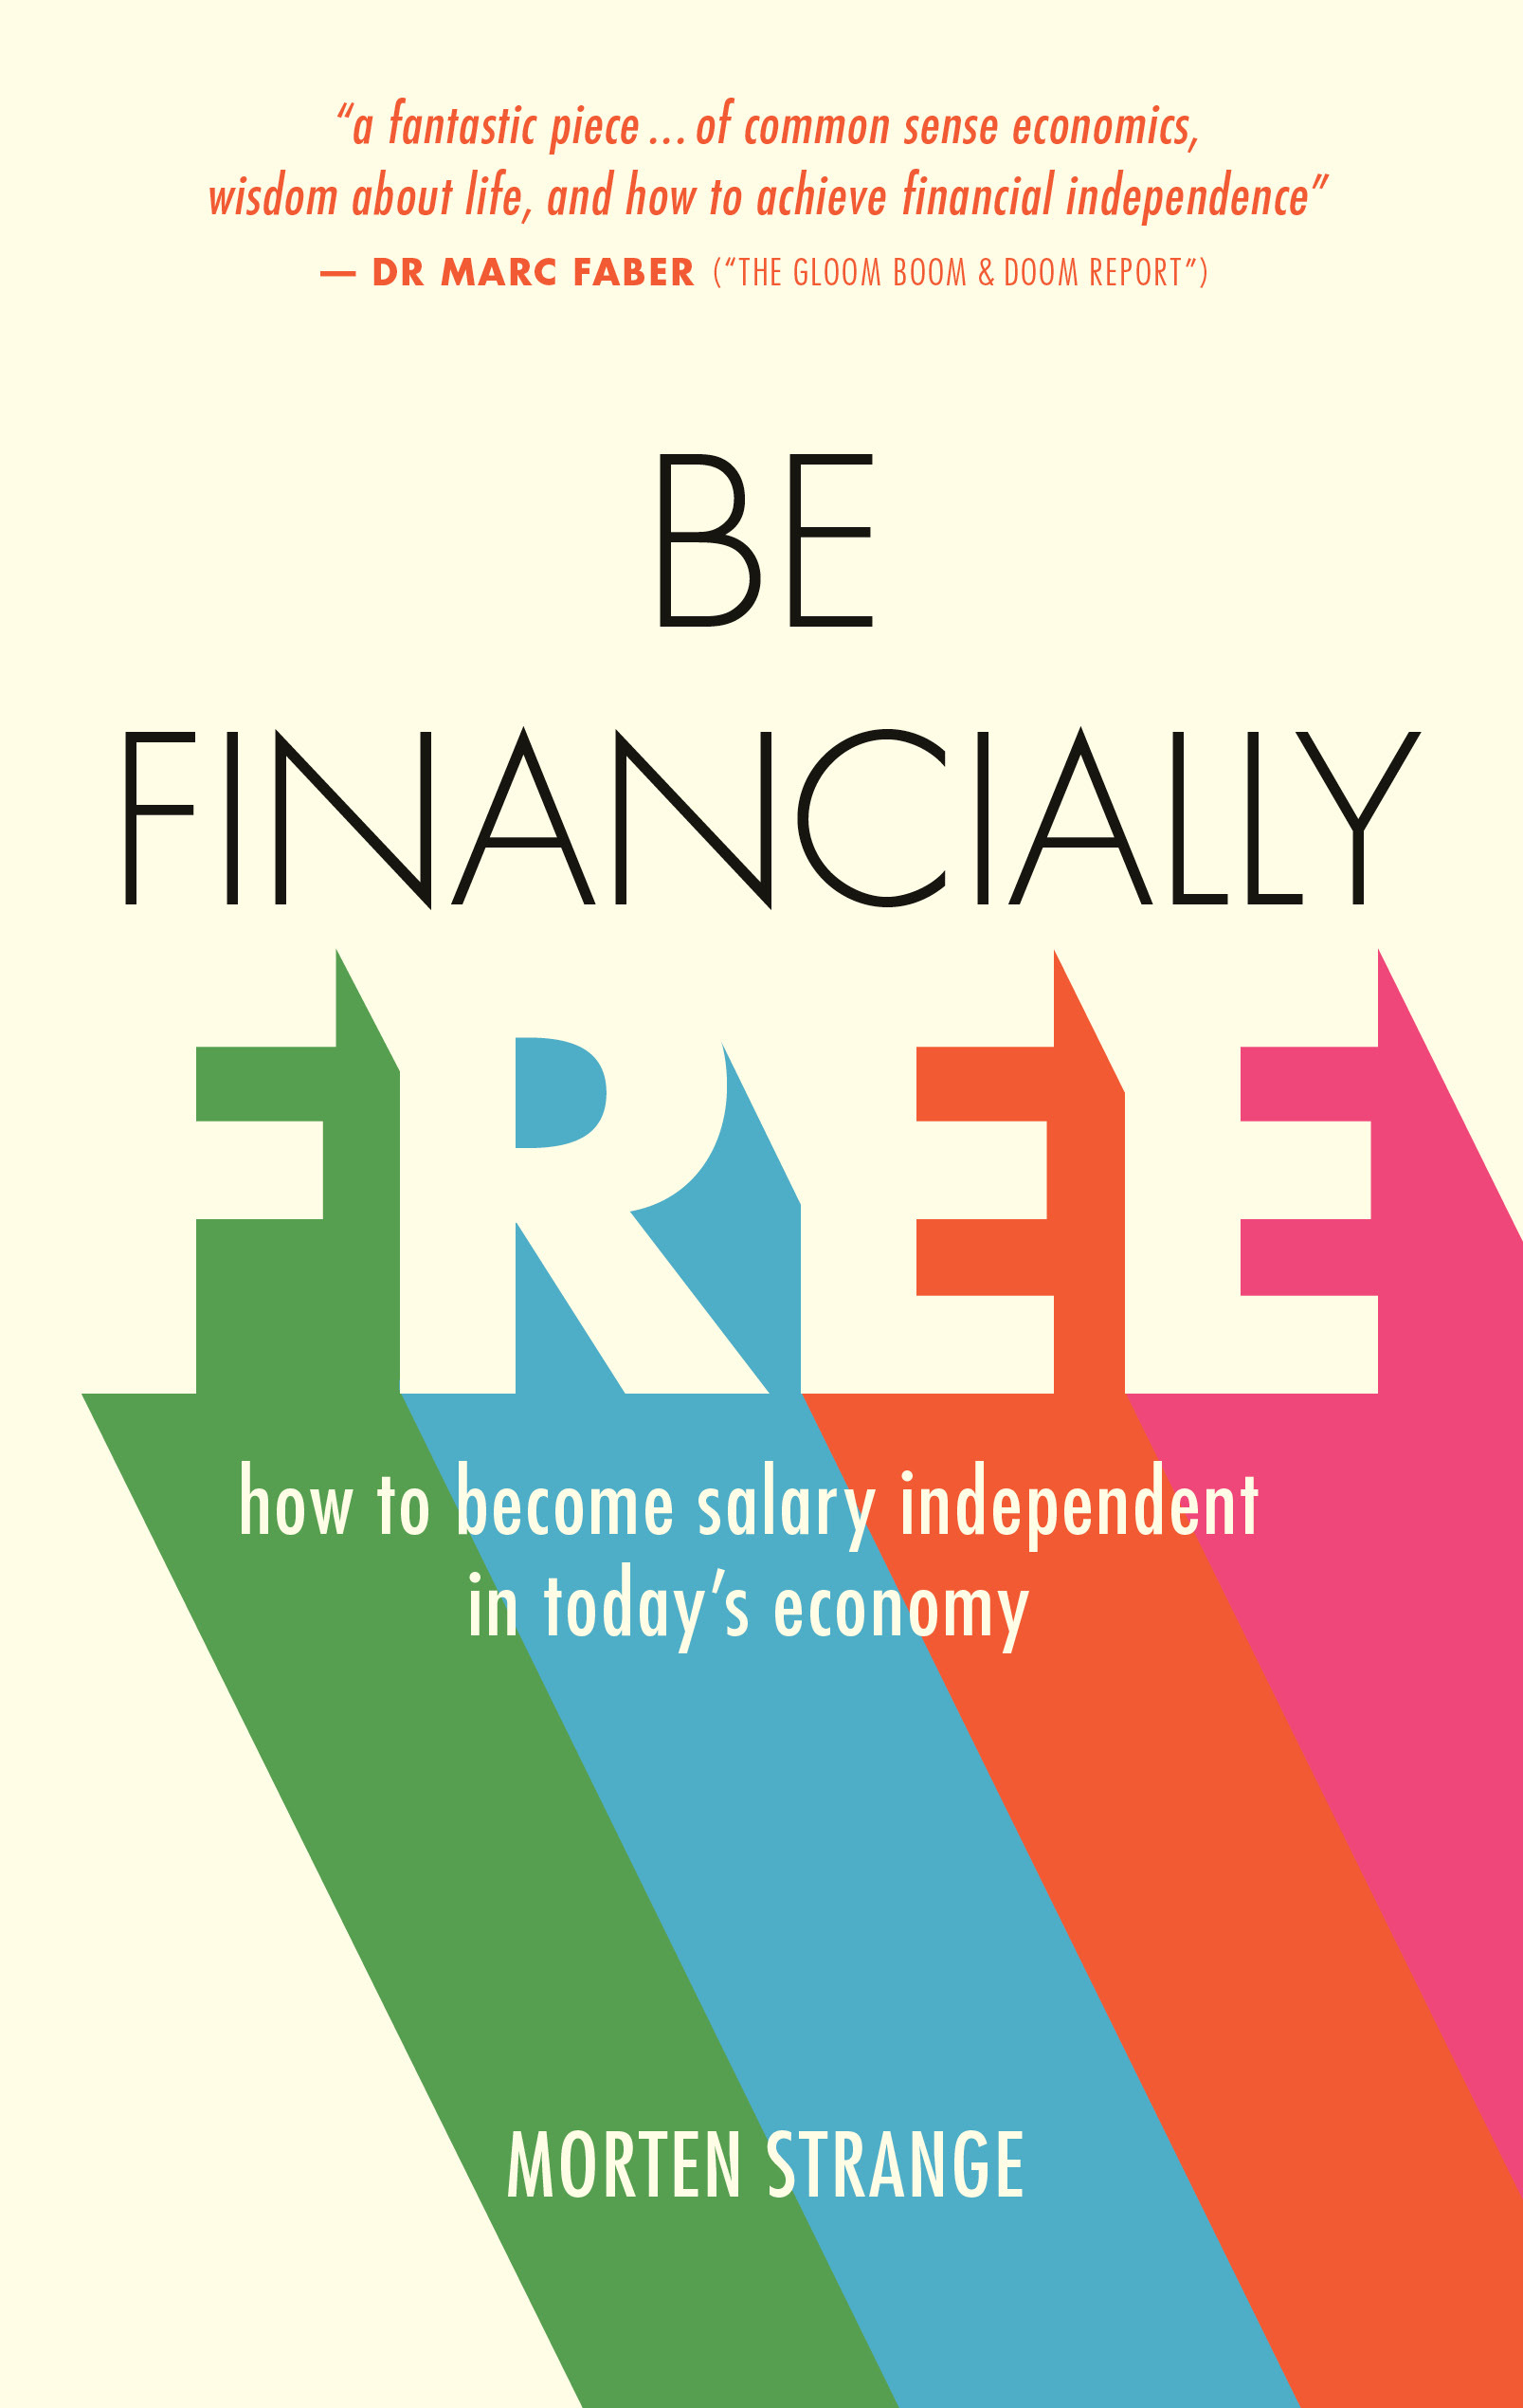 Be Financially Free How to become salary independent in today's economy